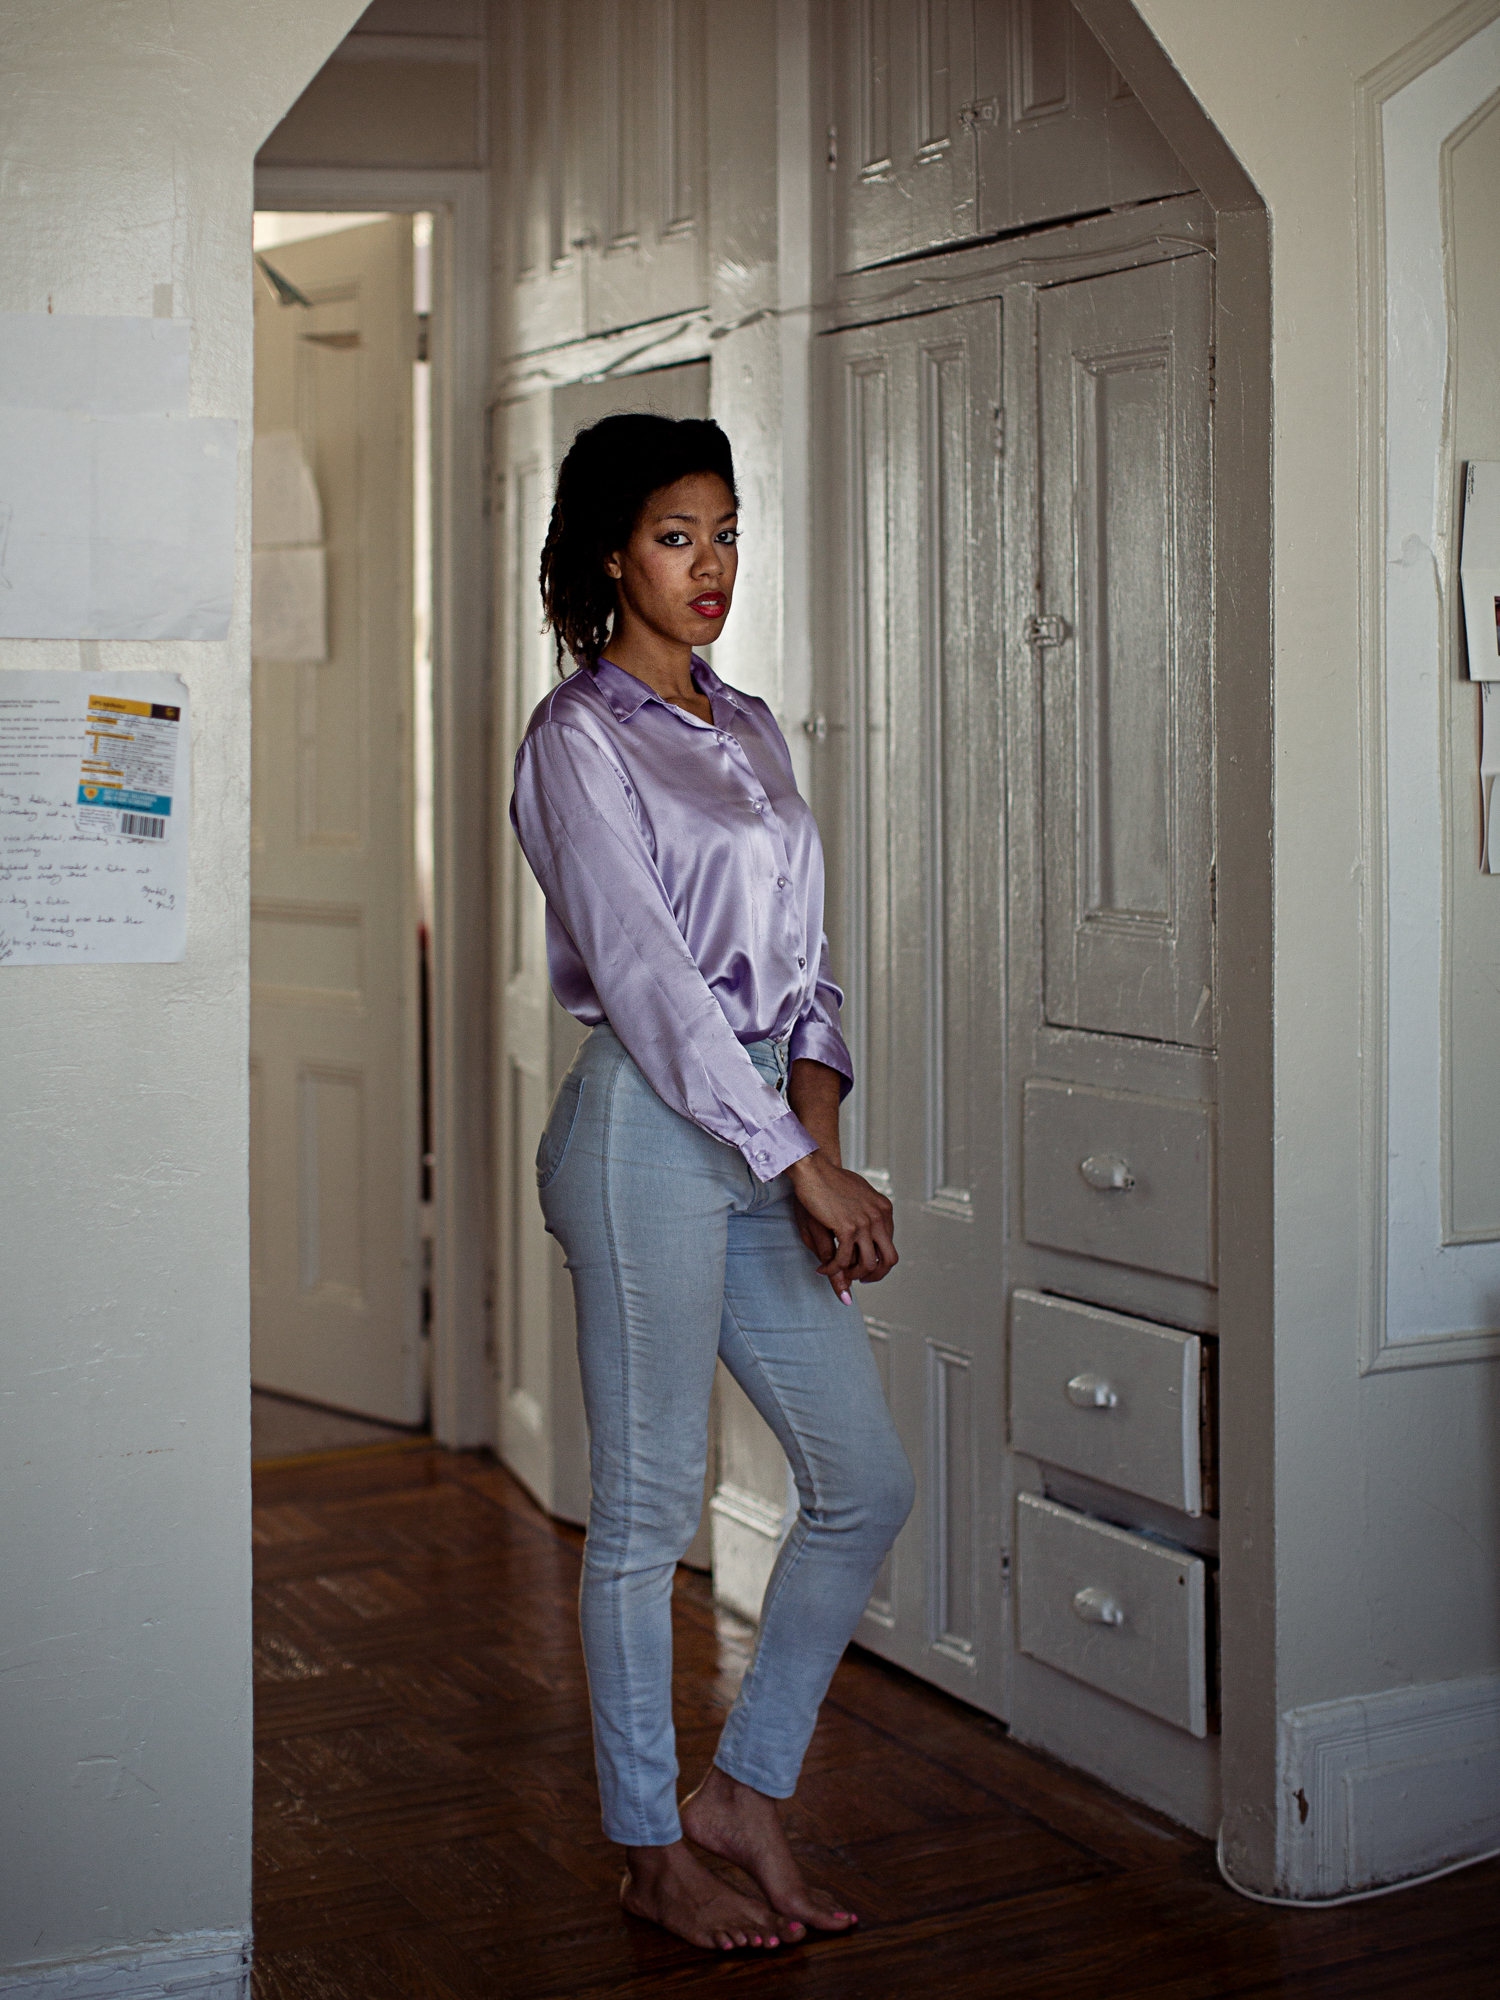 Photographer Deana Lawson in Bedford Styvesant, Brooklyn.